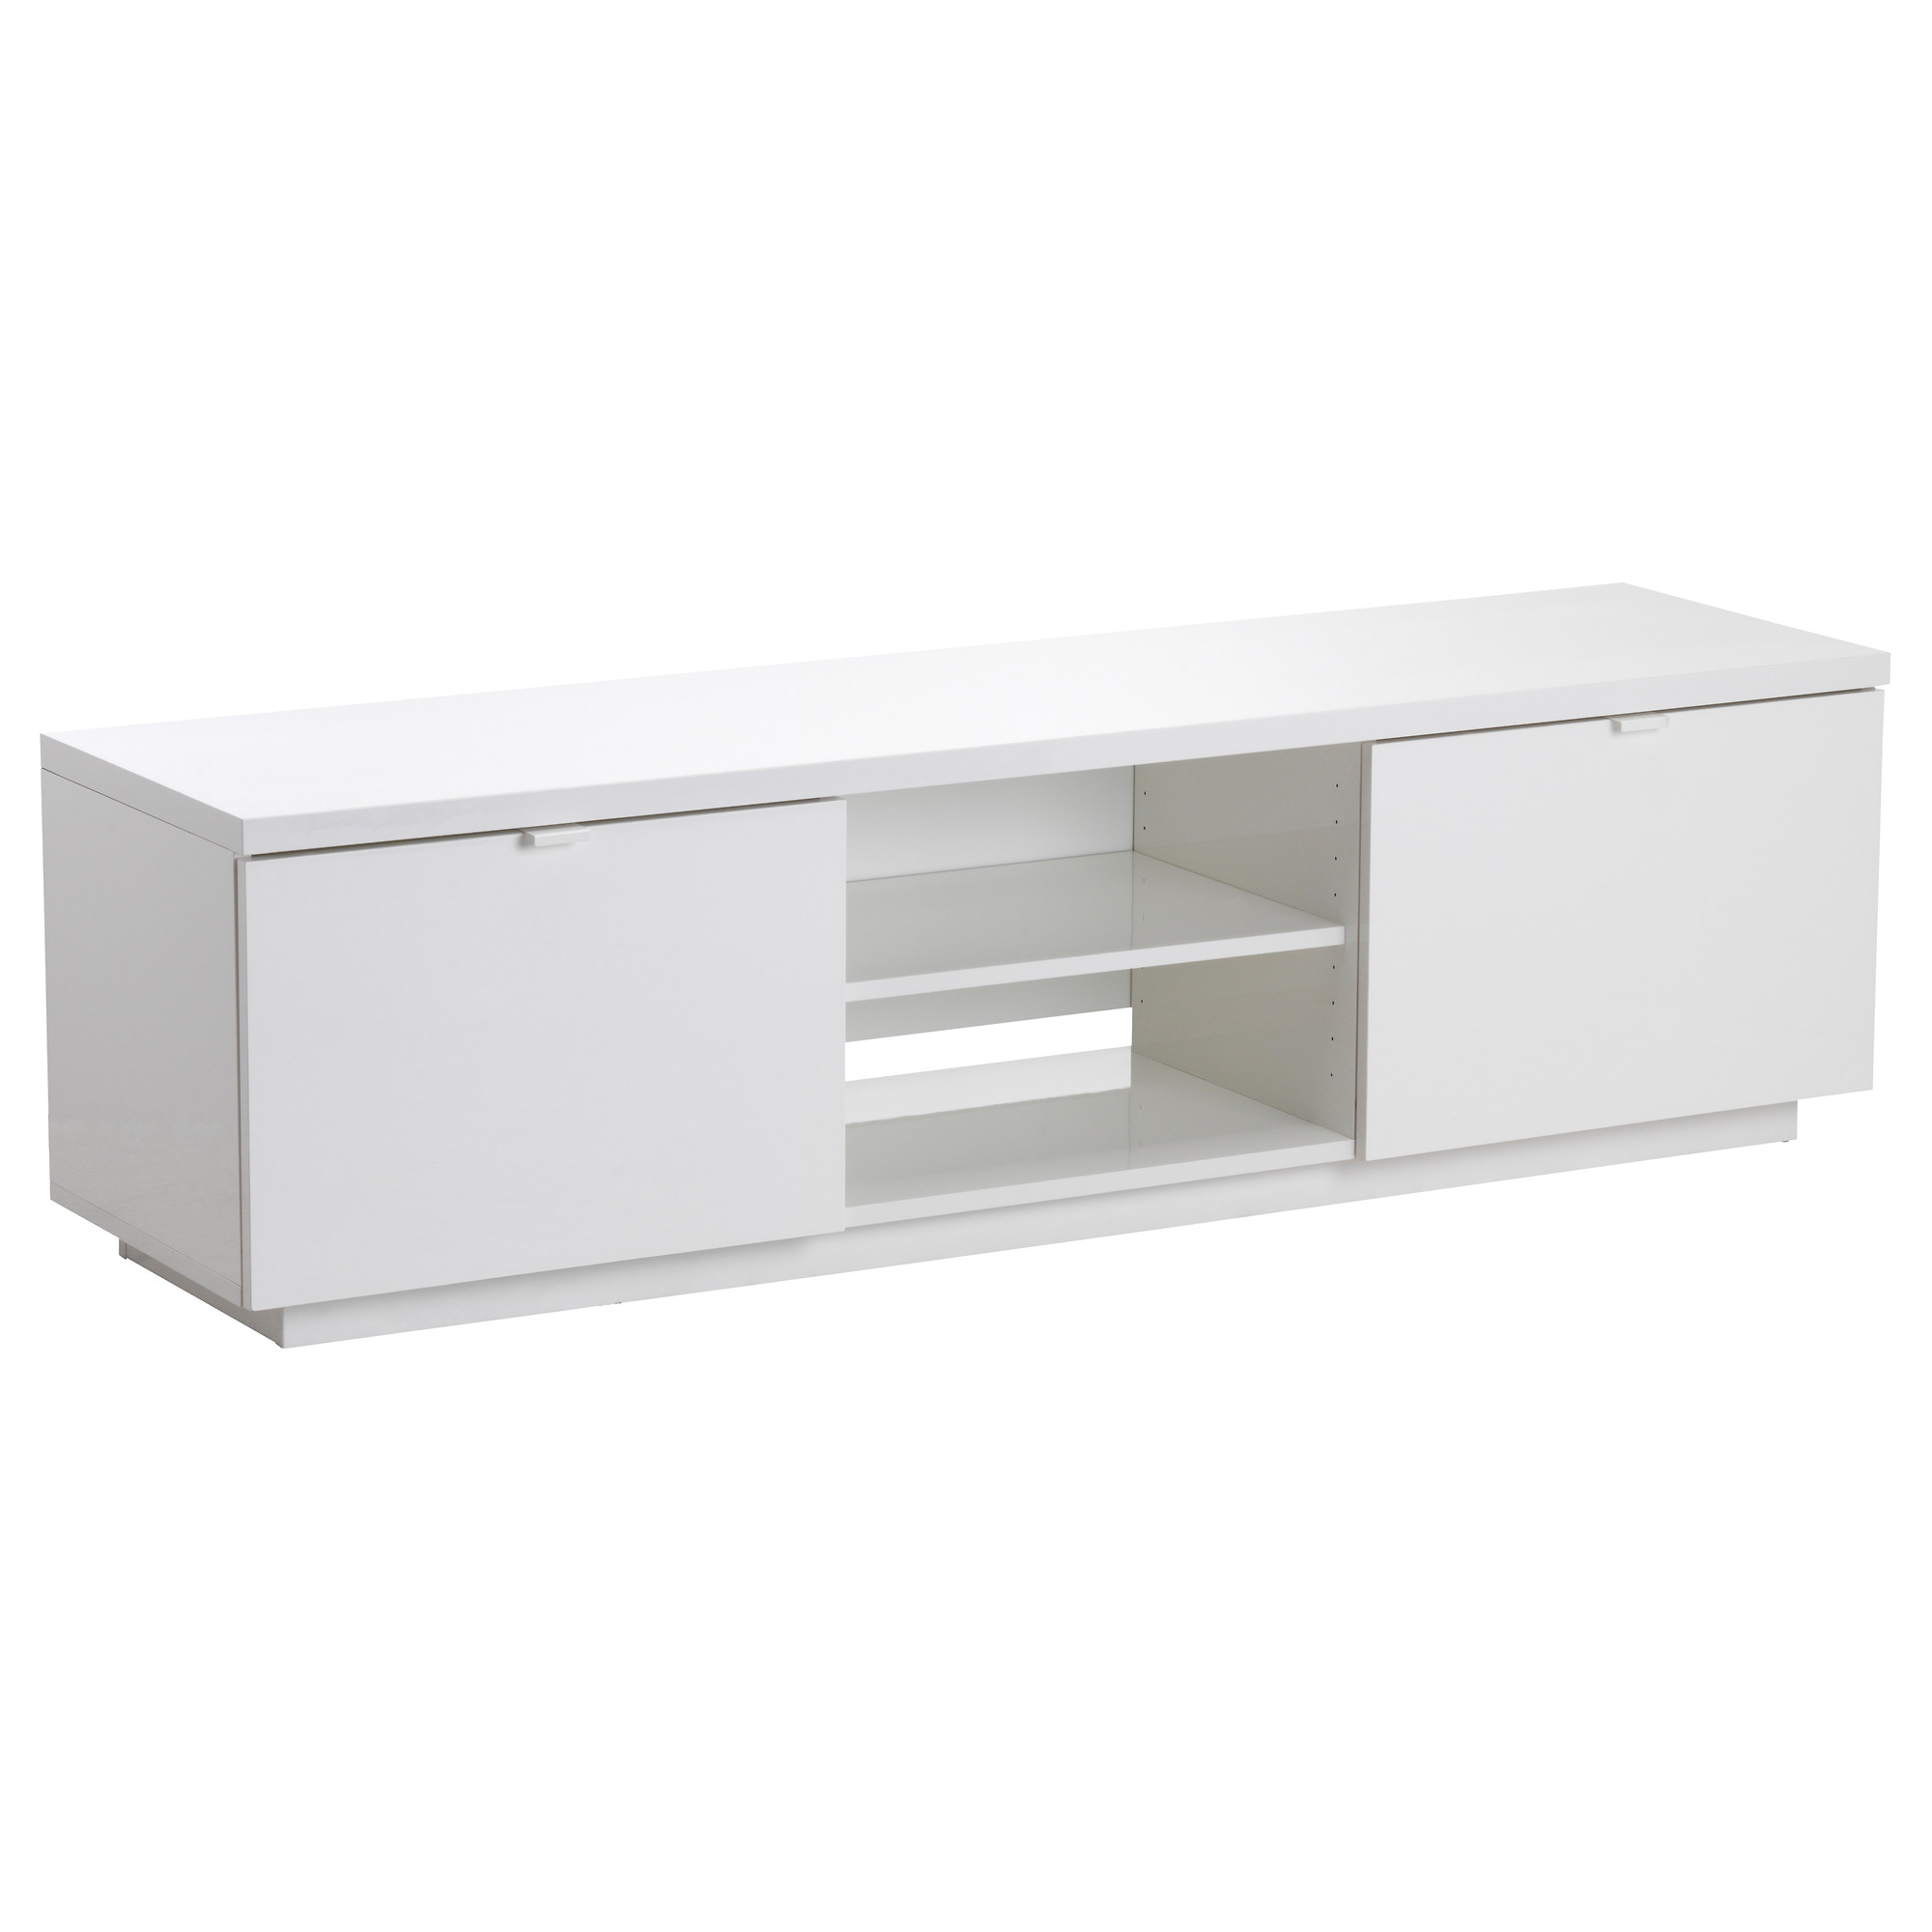 Small White Tv Stands Intended For Widely Used Clear Tv Stand Small White Ikea Cabinet Designs For Living Room (Gallery 4 of 20)